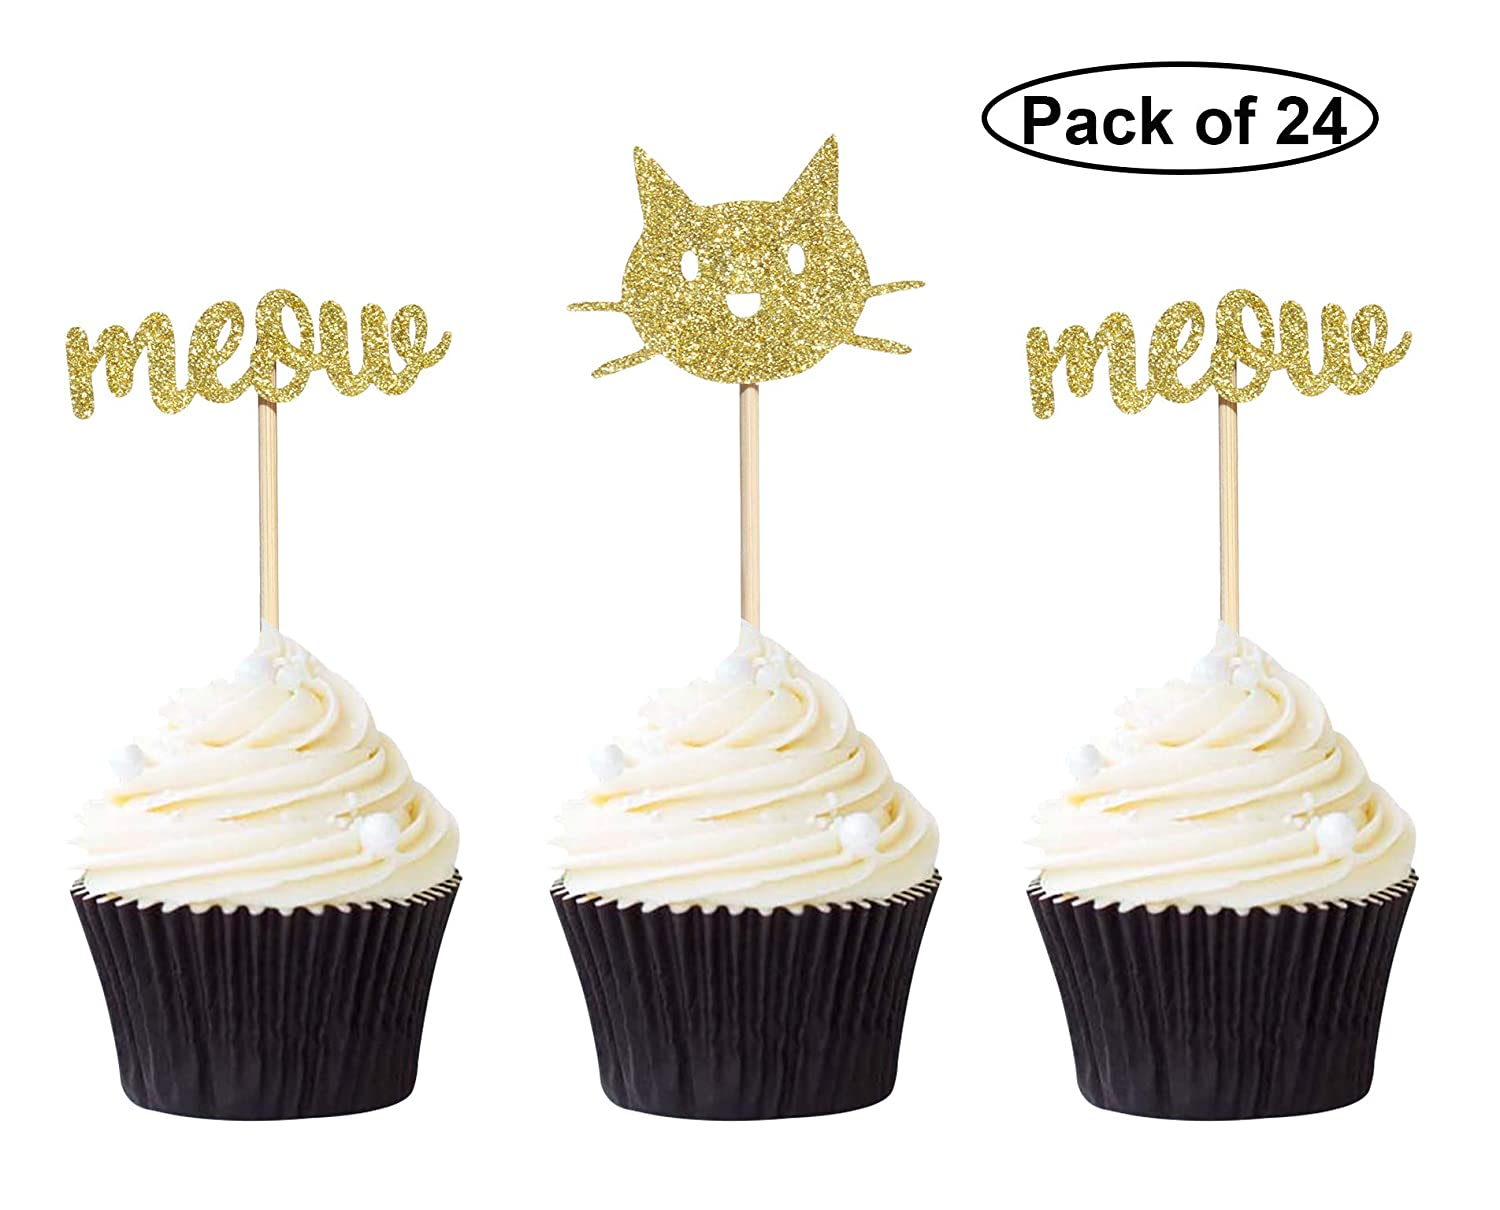 24 Counts Black Cat and Meow Cupcake Toppers Girls Birthday//Cat Lover//Kitten Party Decorations Giuffi